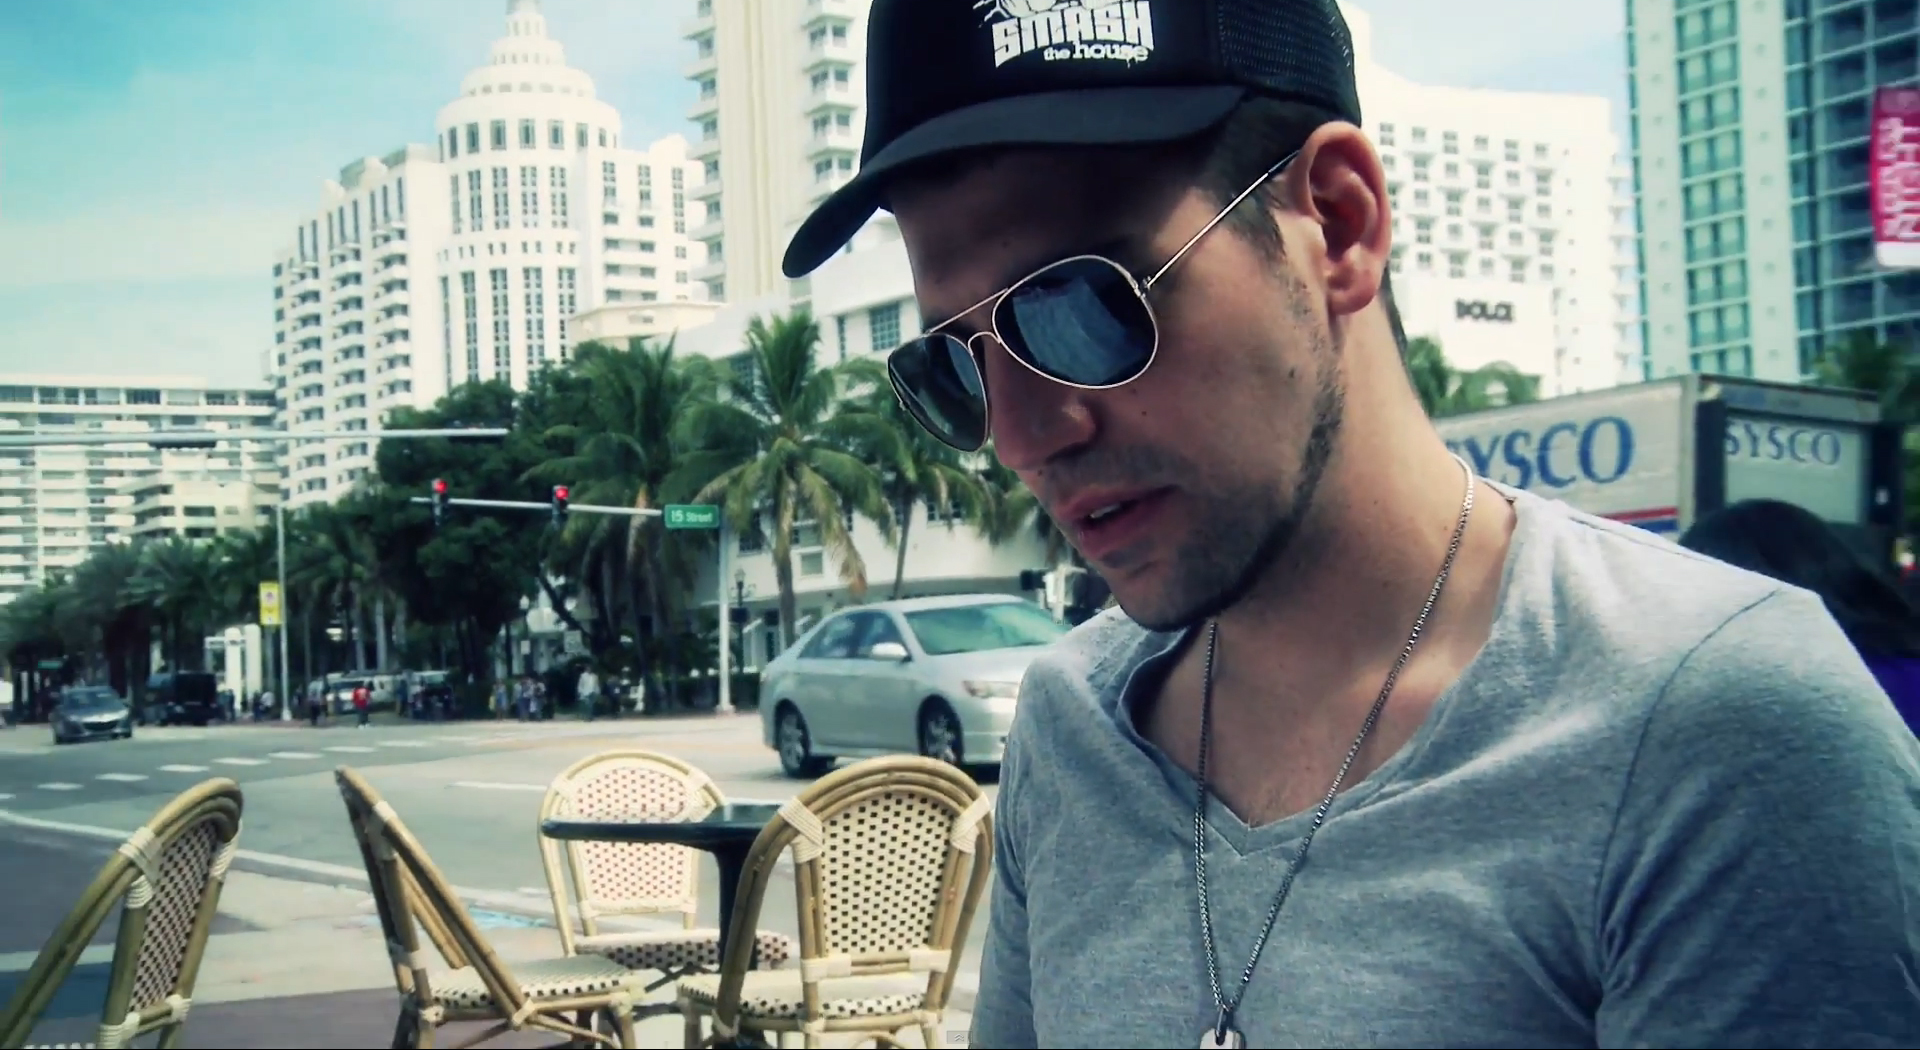 Dimitri-Vegas-Like-Mike-hd-wallpaper-SMASH-tour-photos-Like-Mike-in-miami